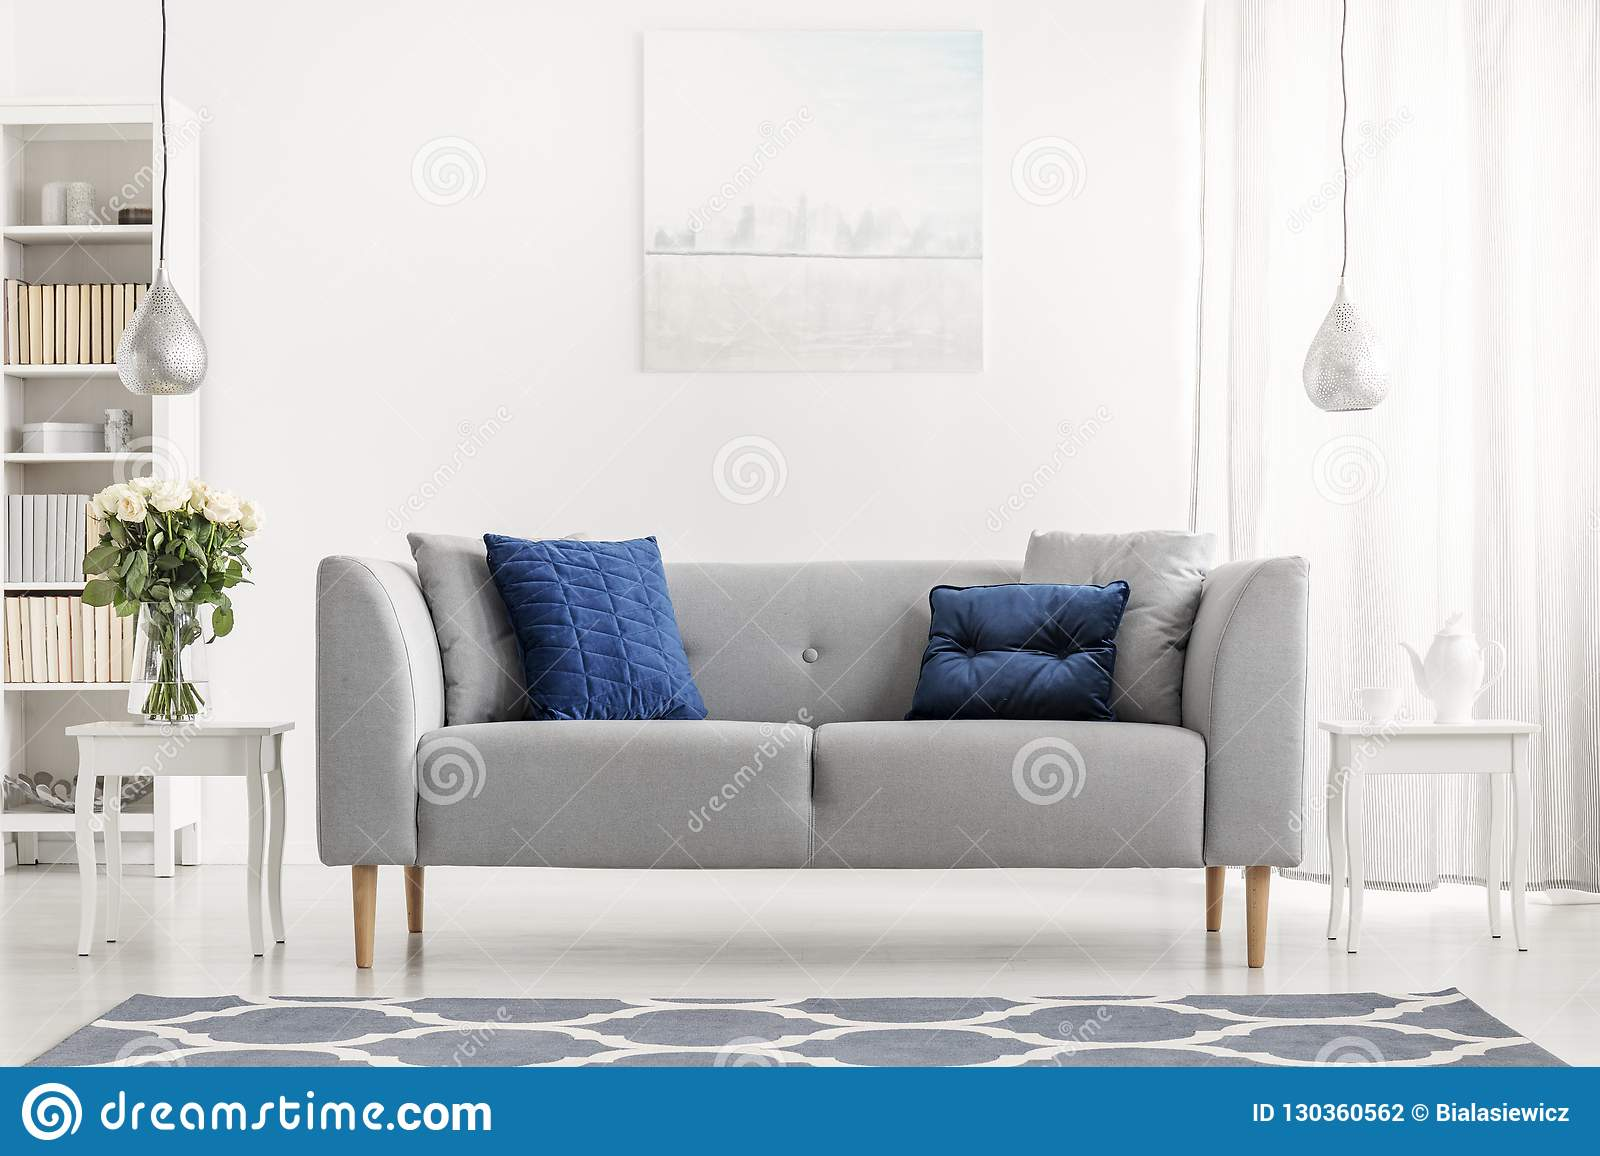 Remarkable Blue Pillows On Grey Couch Next To Table With Flowers In Andrewgaddart Wooden Chair Designs For Living Room Andrewgaddartcom